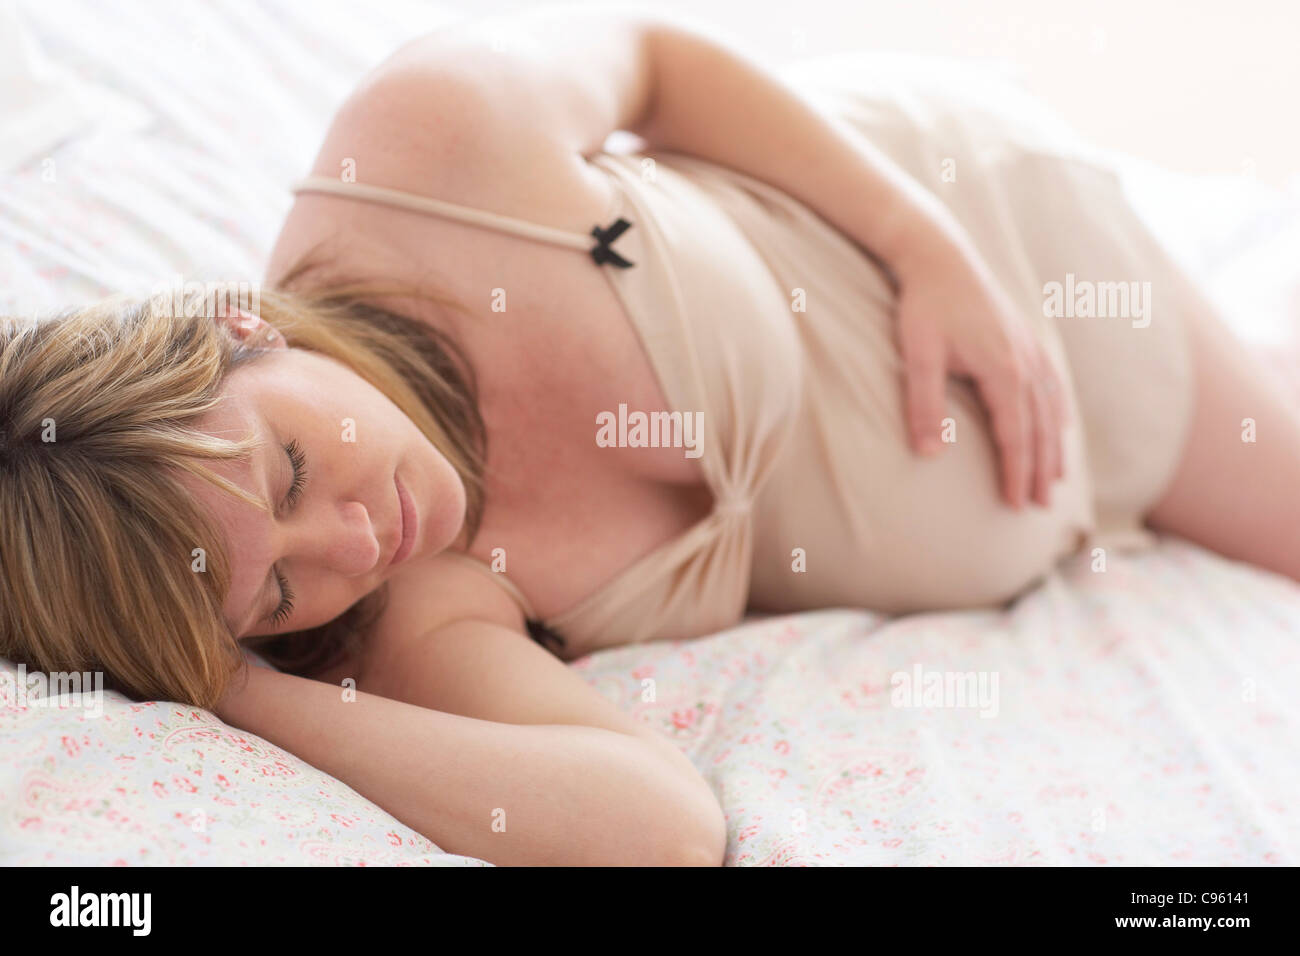 Pregnant woman sleeping. She is 35 weeks pregnant. - Stock Image